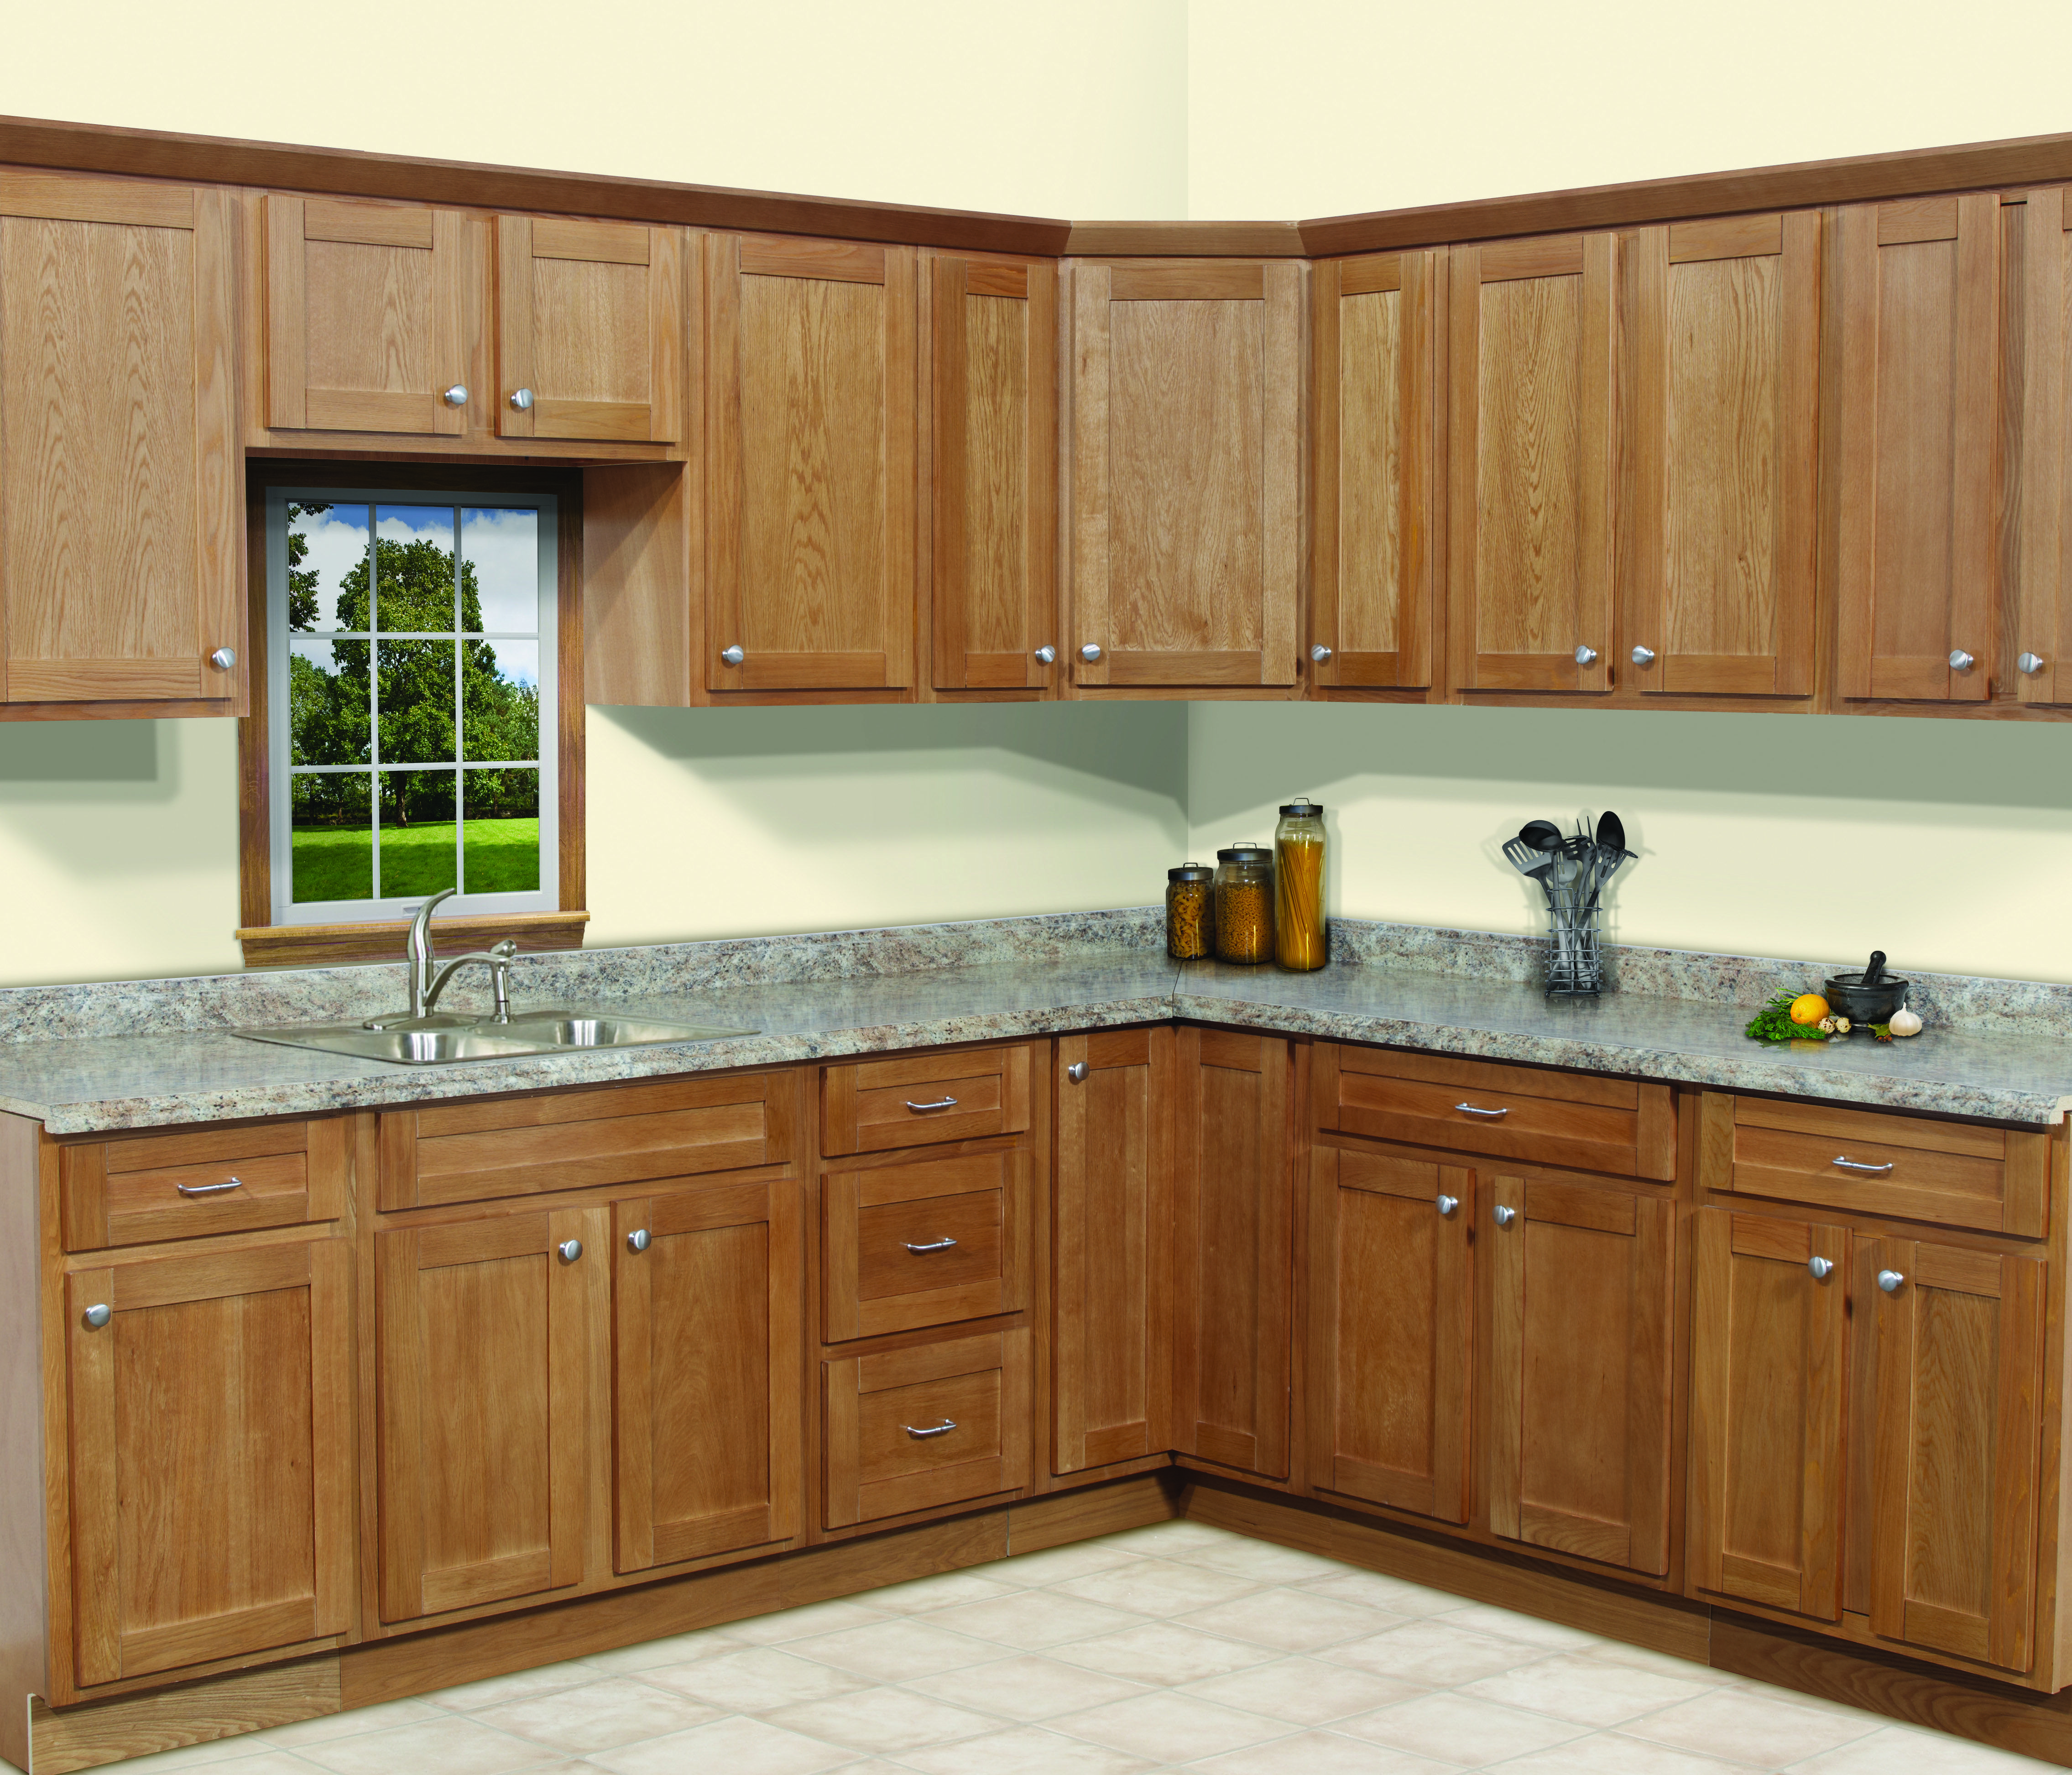 Traditional Overlay With Shaker Door Style Shaker Style ...